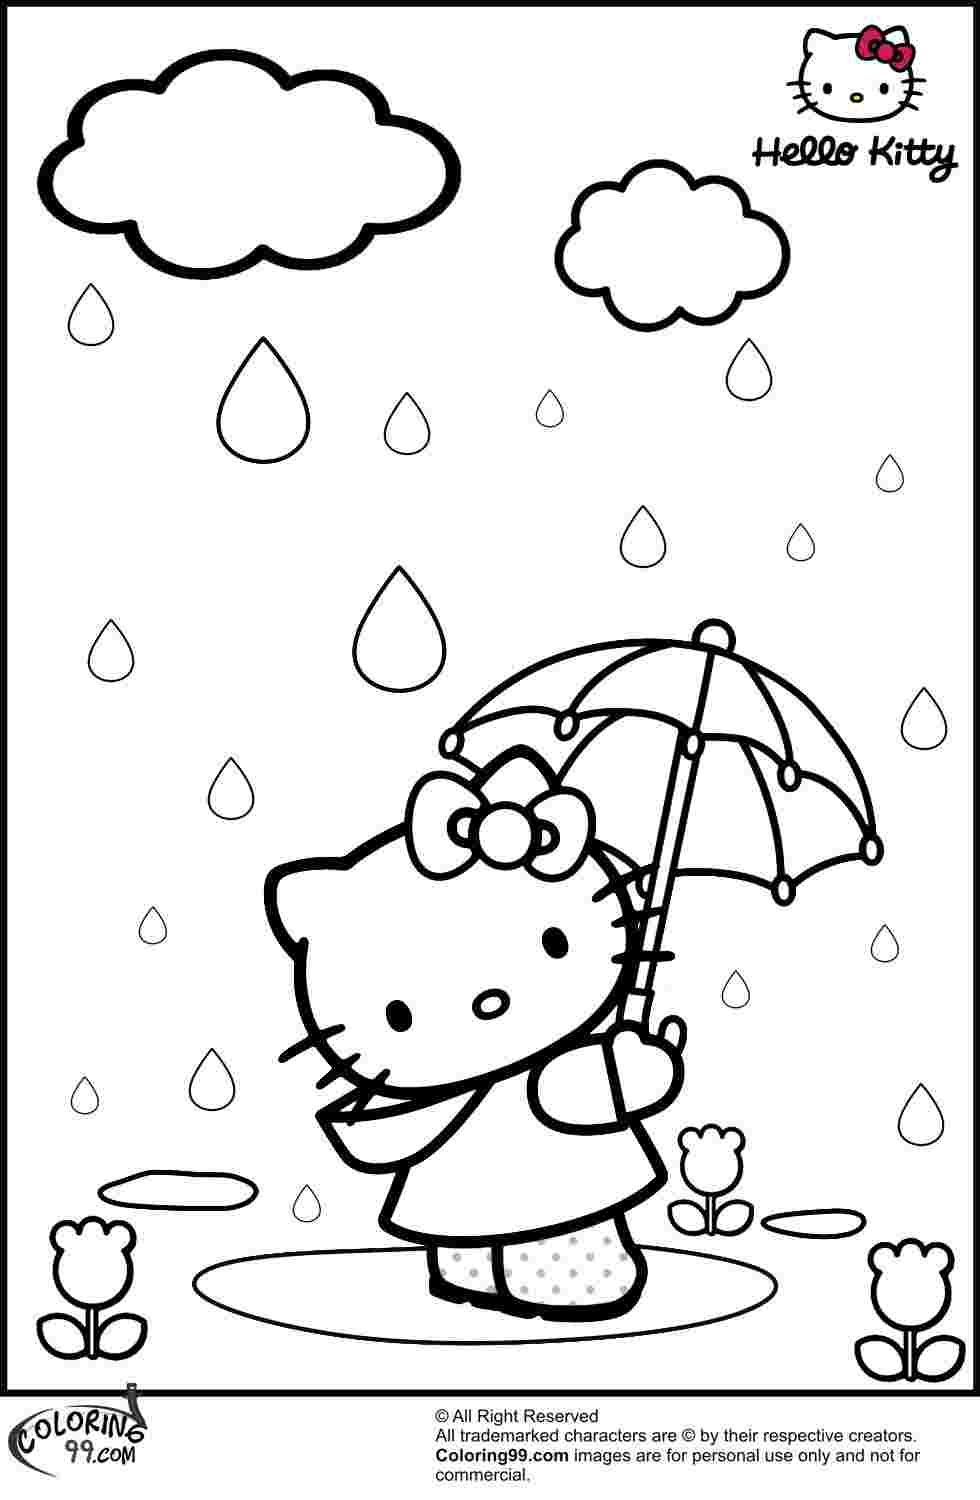 hello kitty family coloring pages coloring hello kittynd mimmy pages 2020 kitty pages coloring kitty family hello